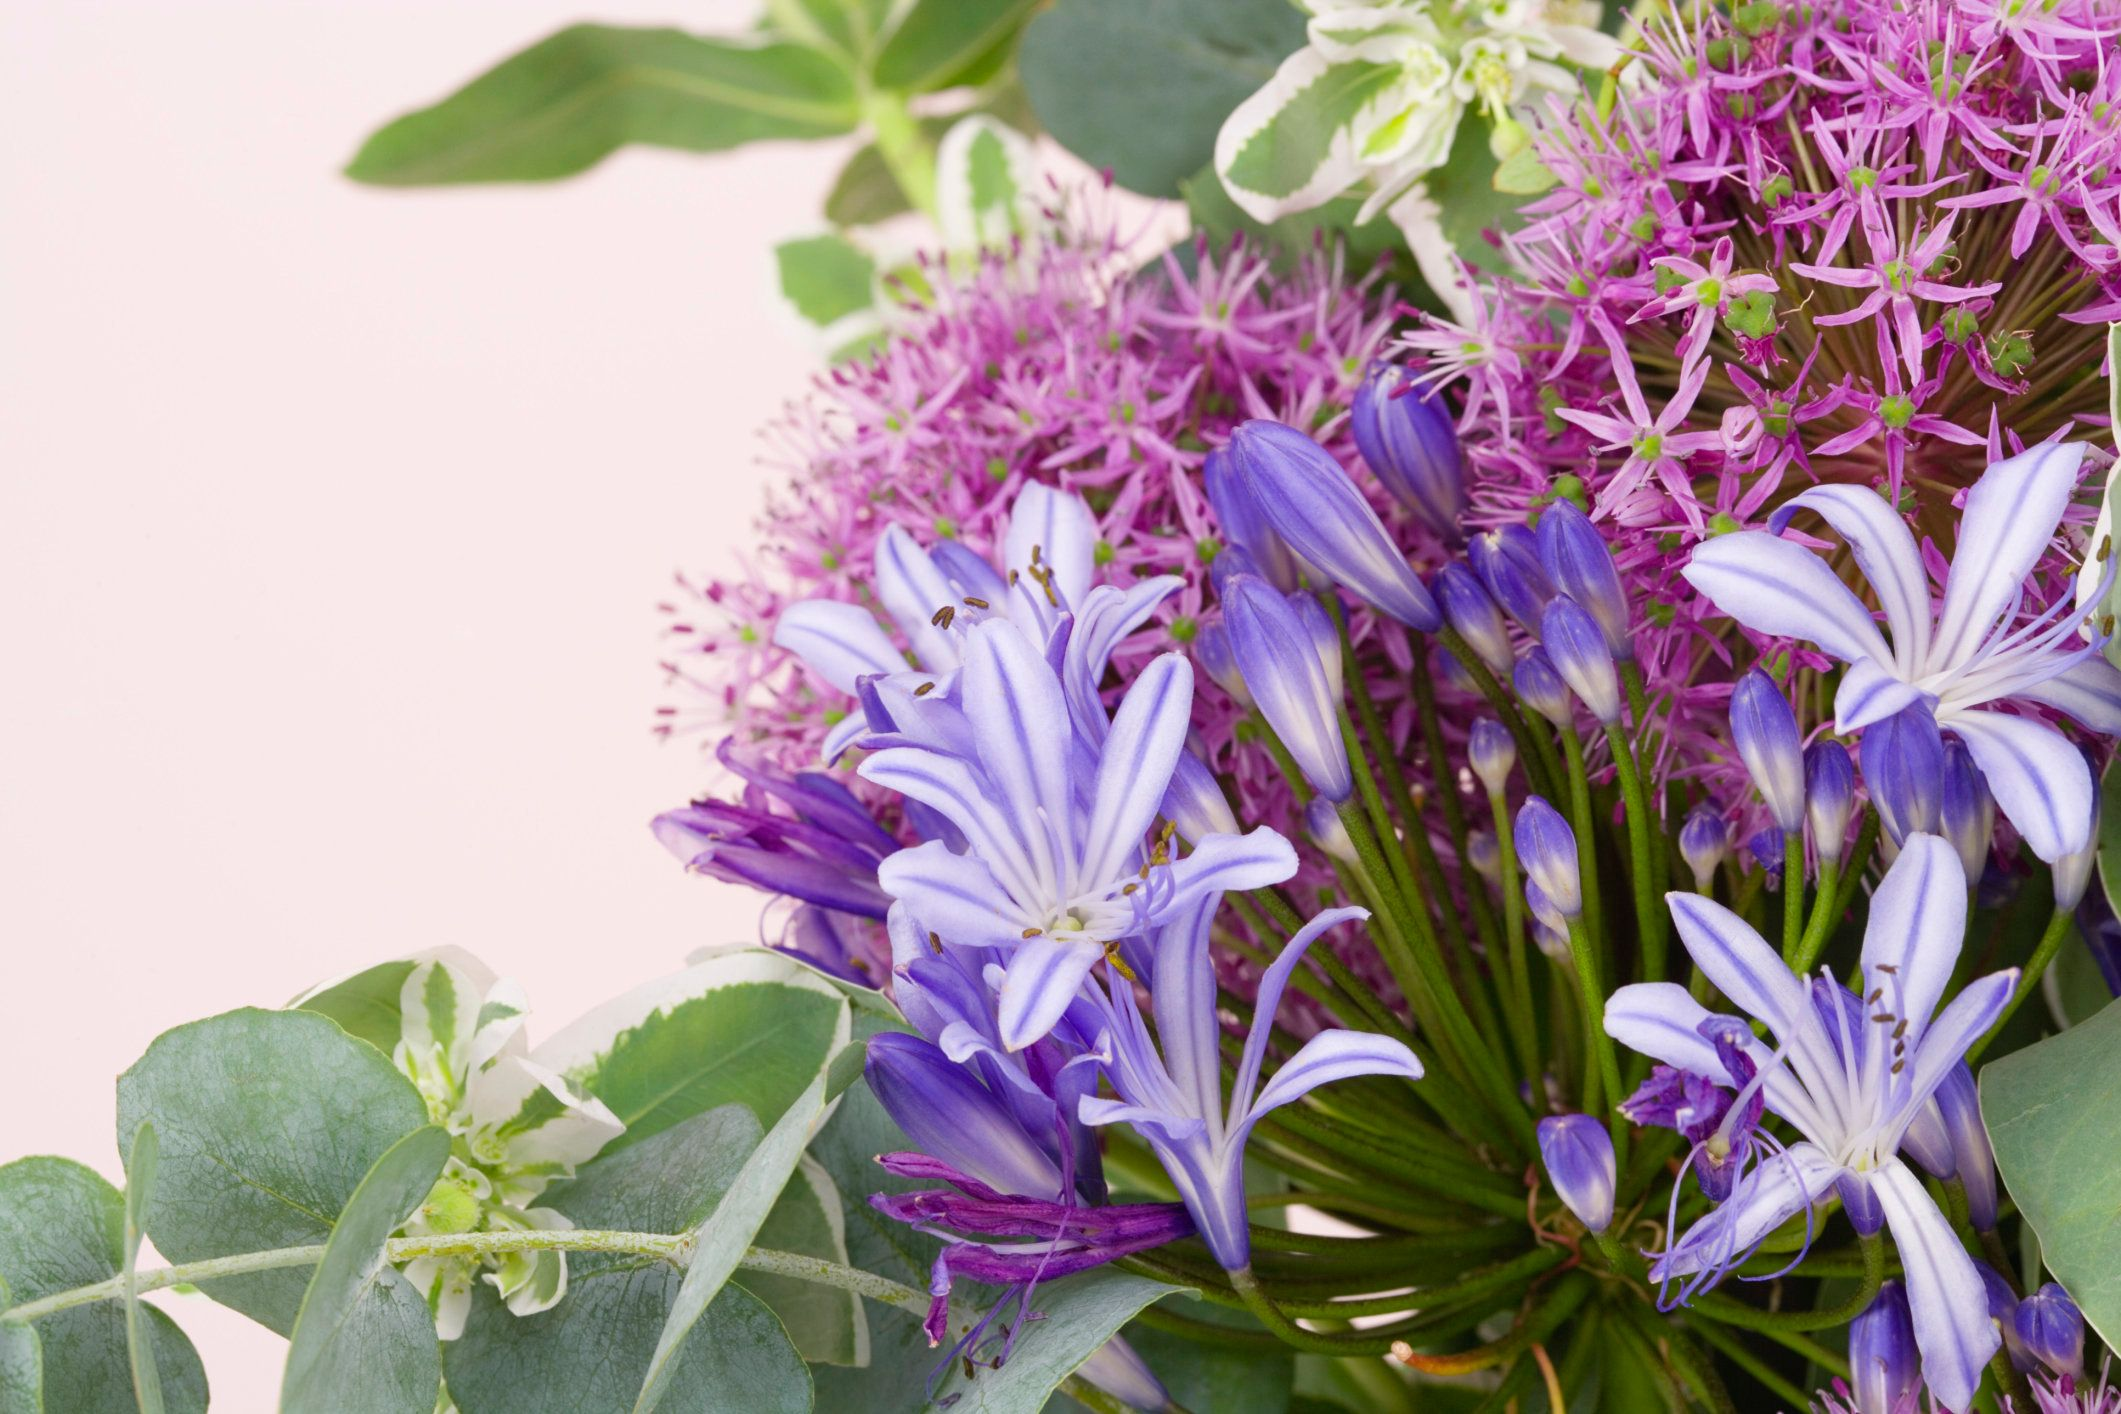 Alliums and agapanthus